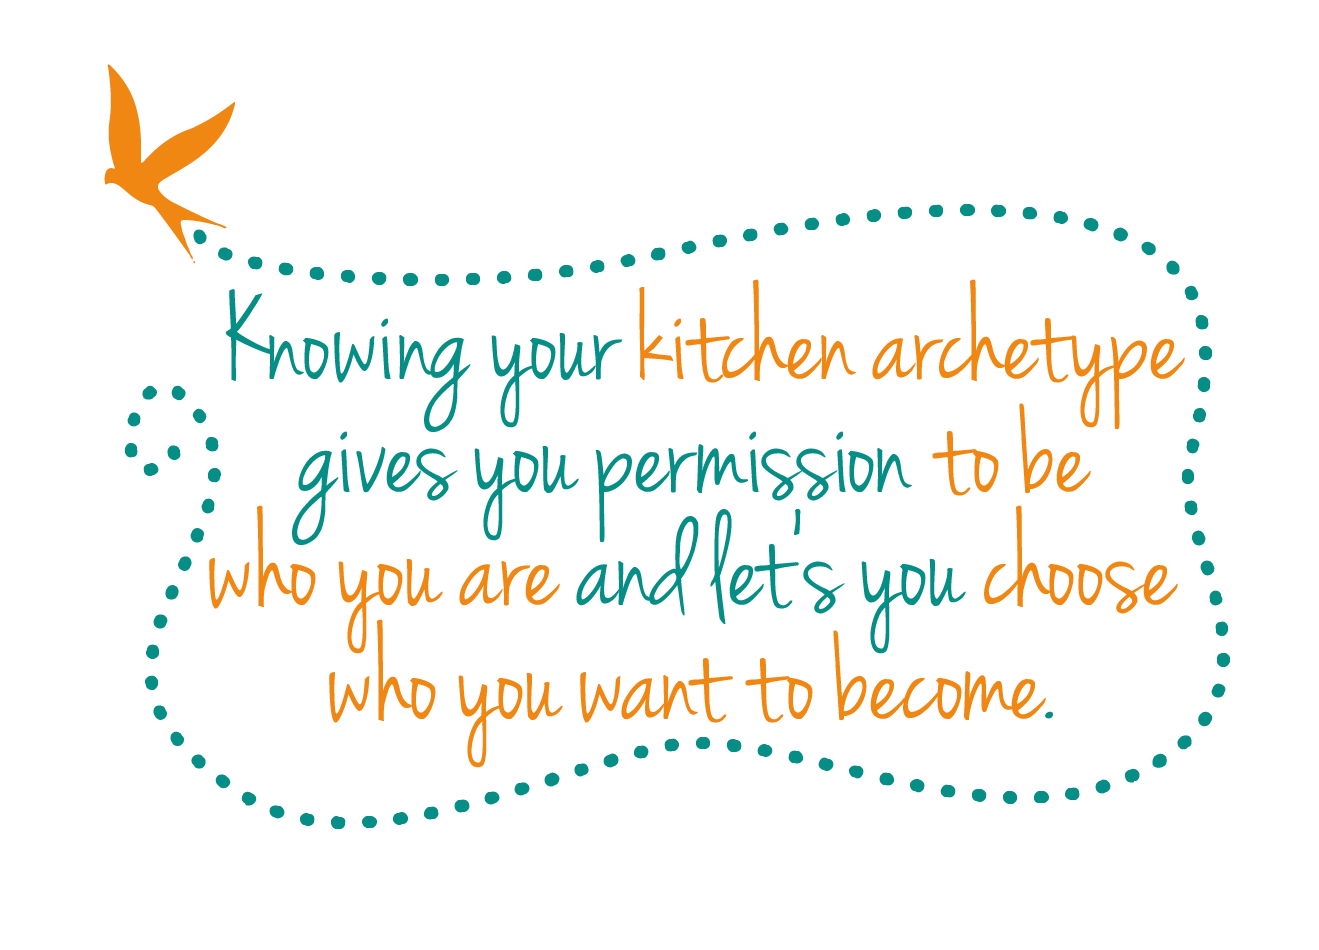 Kitchen Archetype